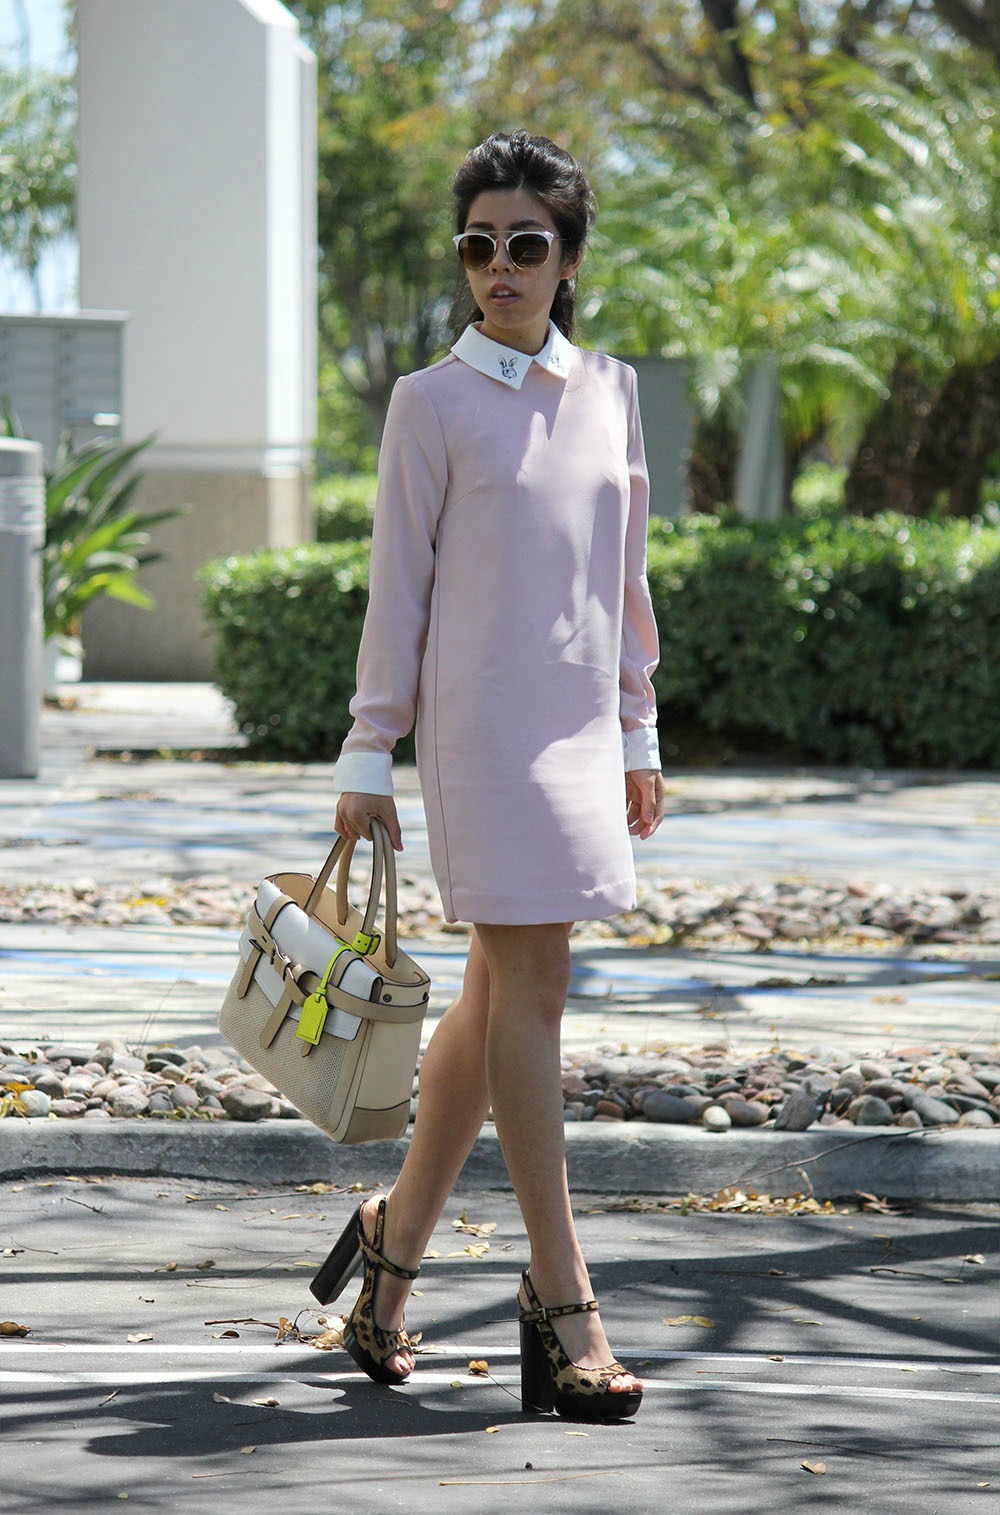 Adrienne Nguyen_Invictus_PInk Dress with White Collar_Bunny Dress-Pastel Dress-What to Wear for Easter